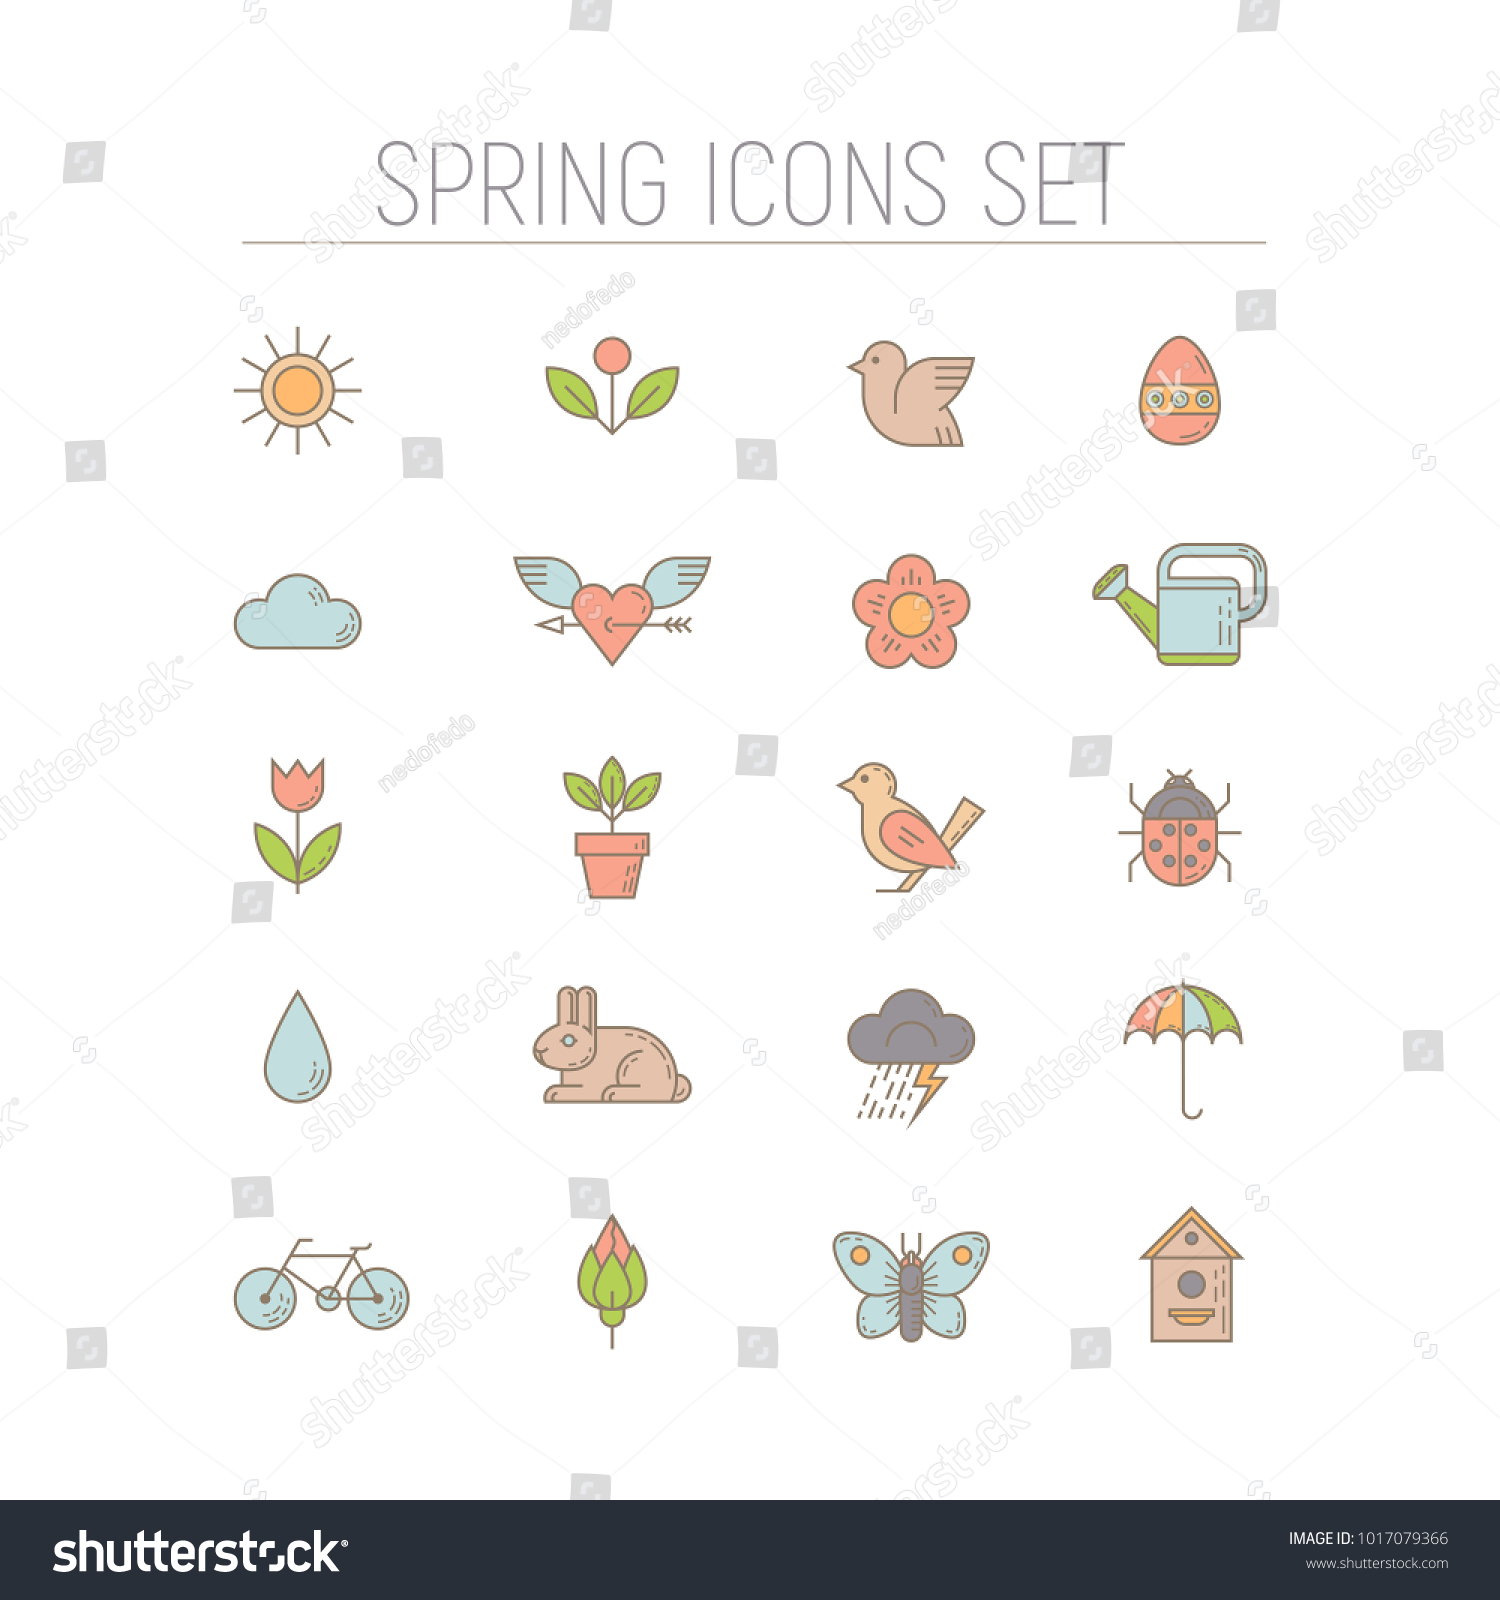 spring icons set collection simple linear stock vector (royalty free)  1017079366  shutterstock